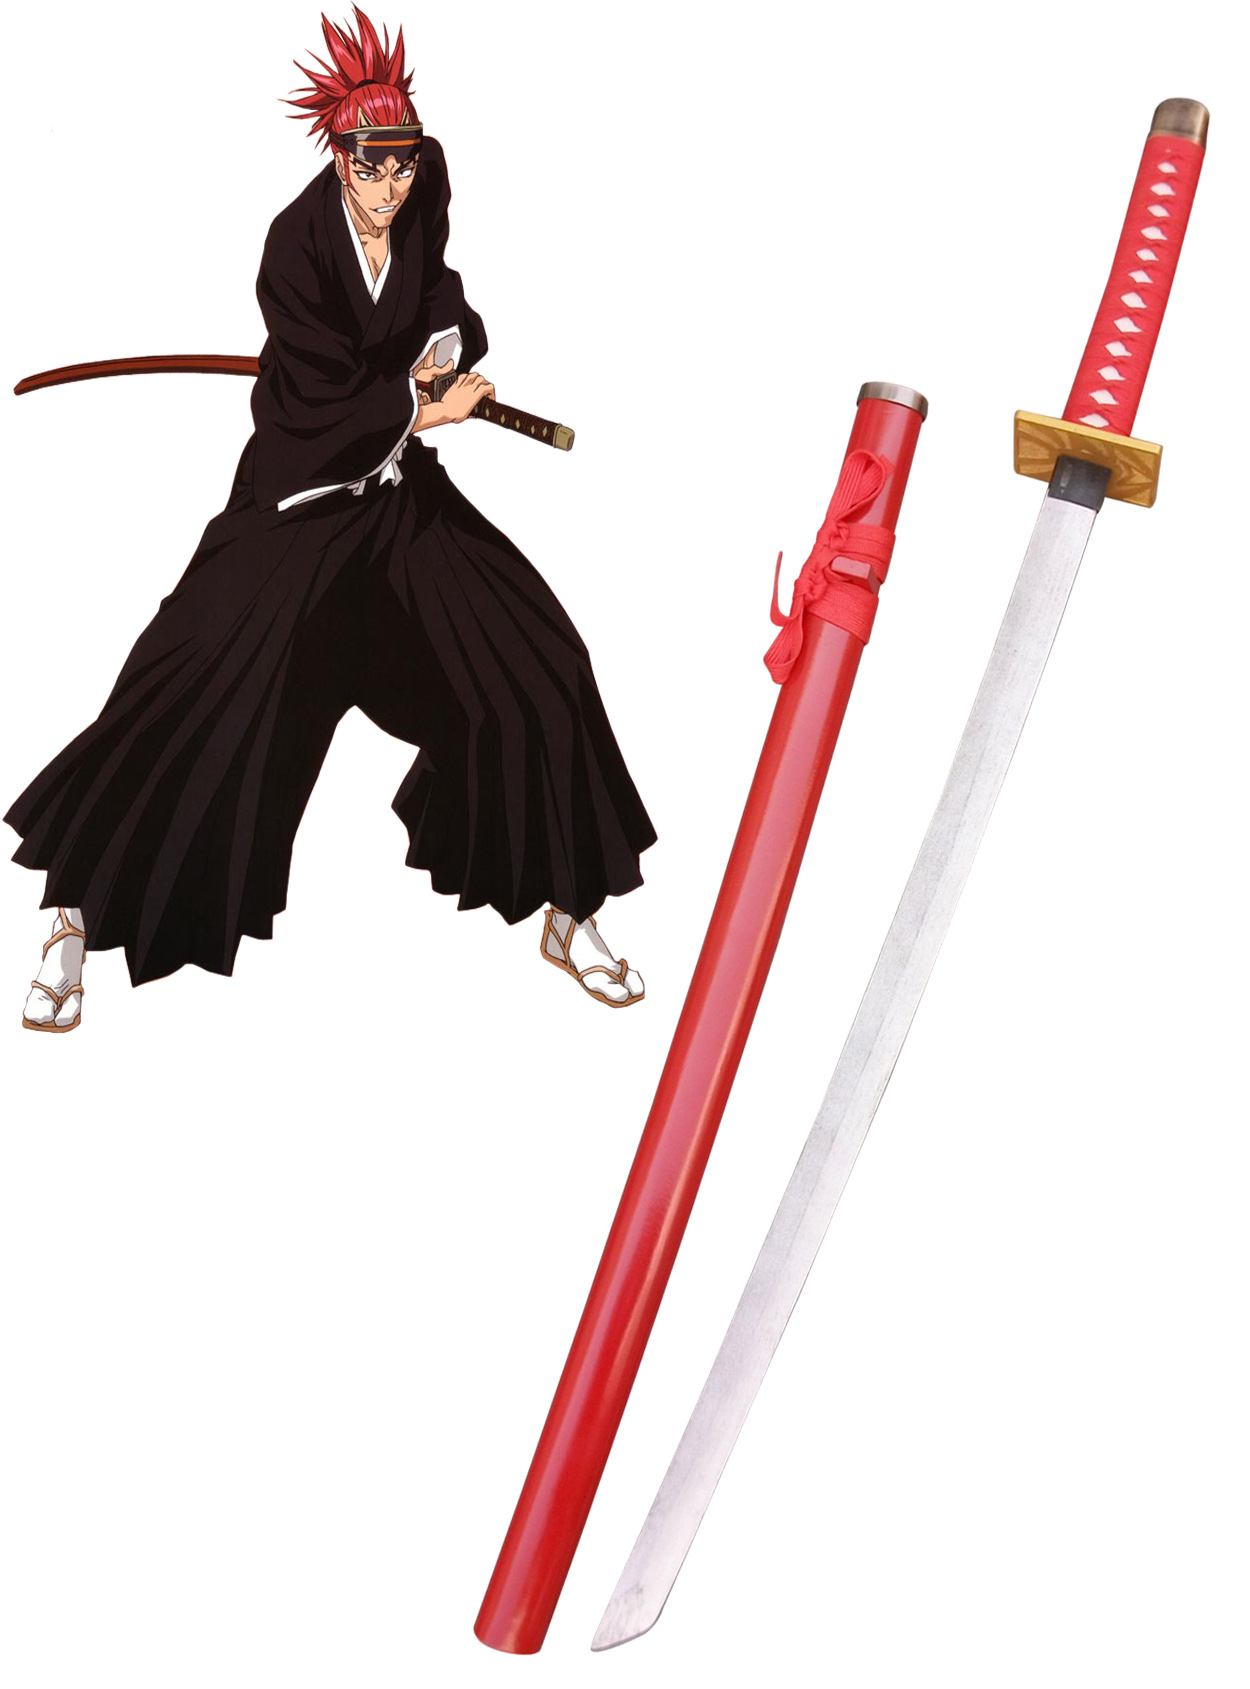 Bleach Abarai Renji Zanpakutou Zabimaru Cosplay Wooden Weapons